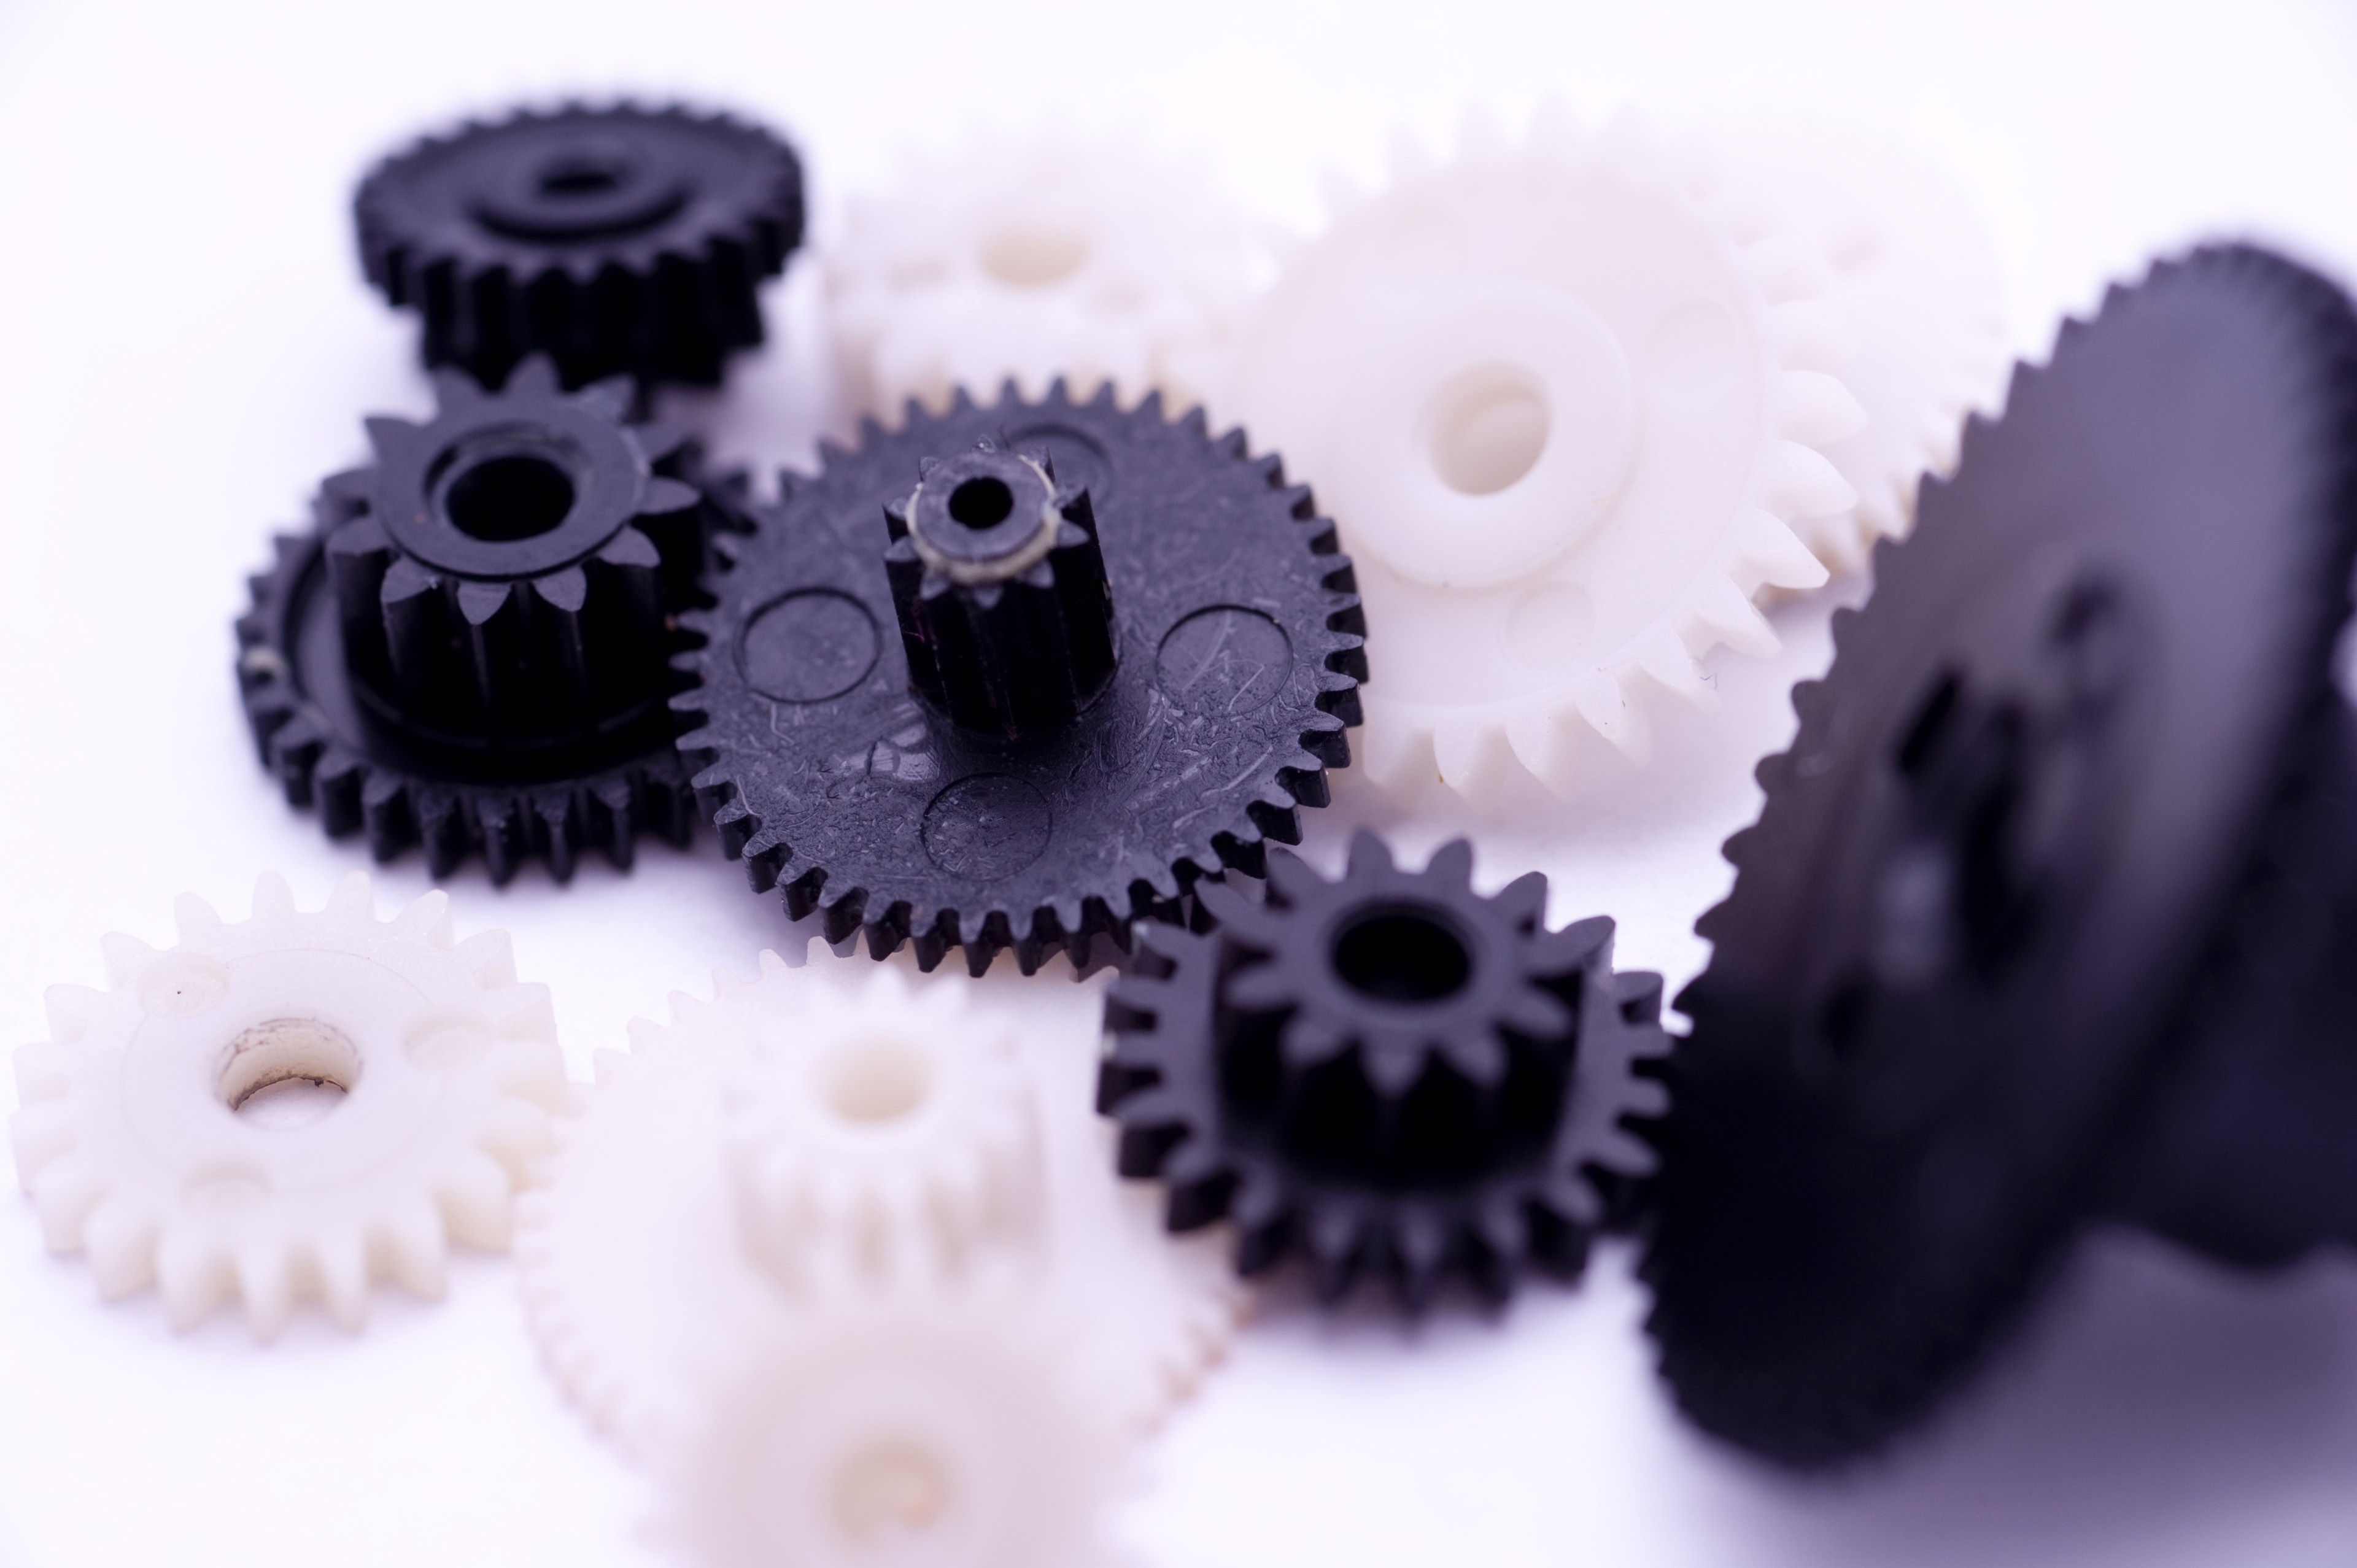 Team Work Concept - Close up Black and White Gears on White Background.